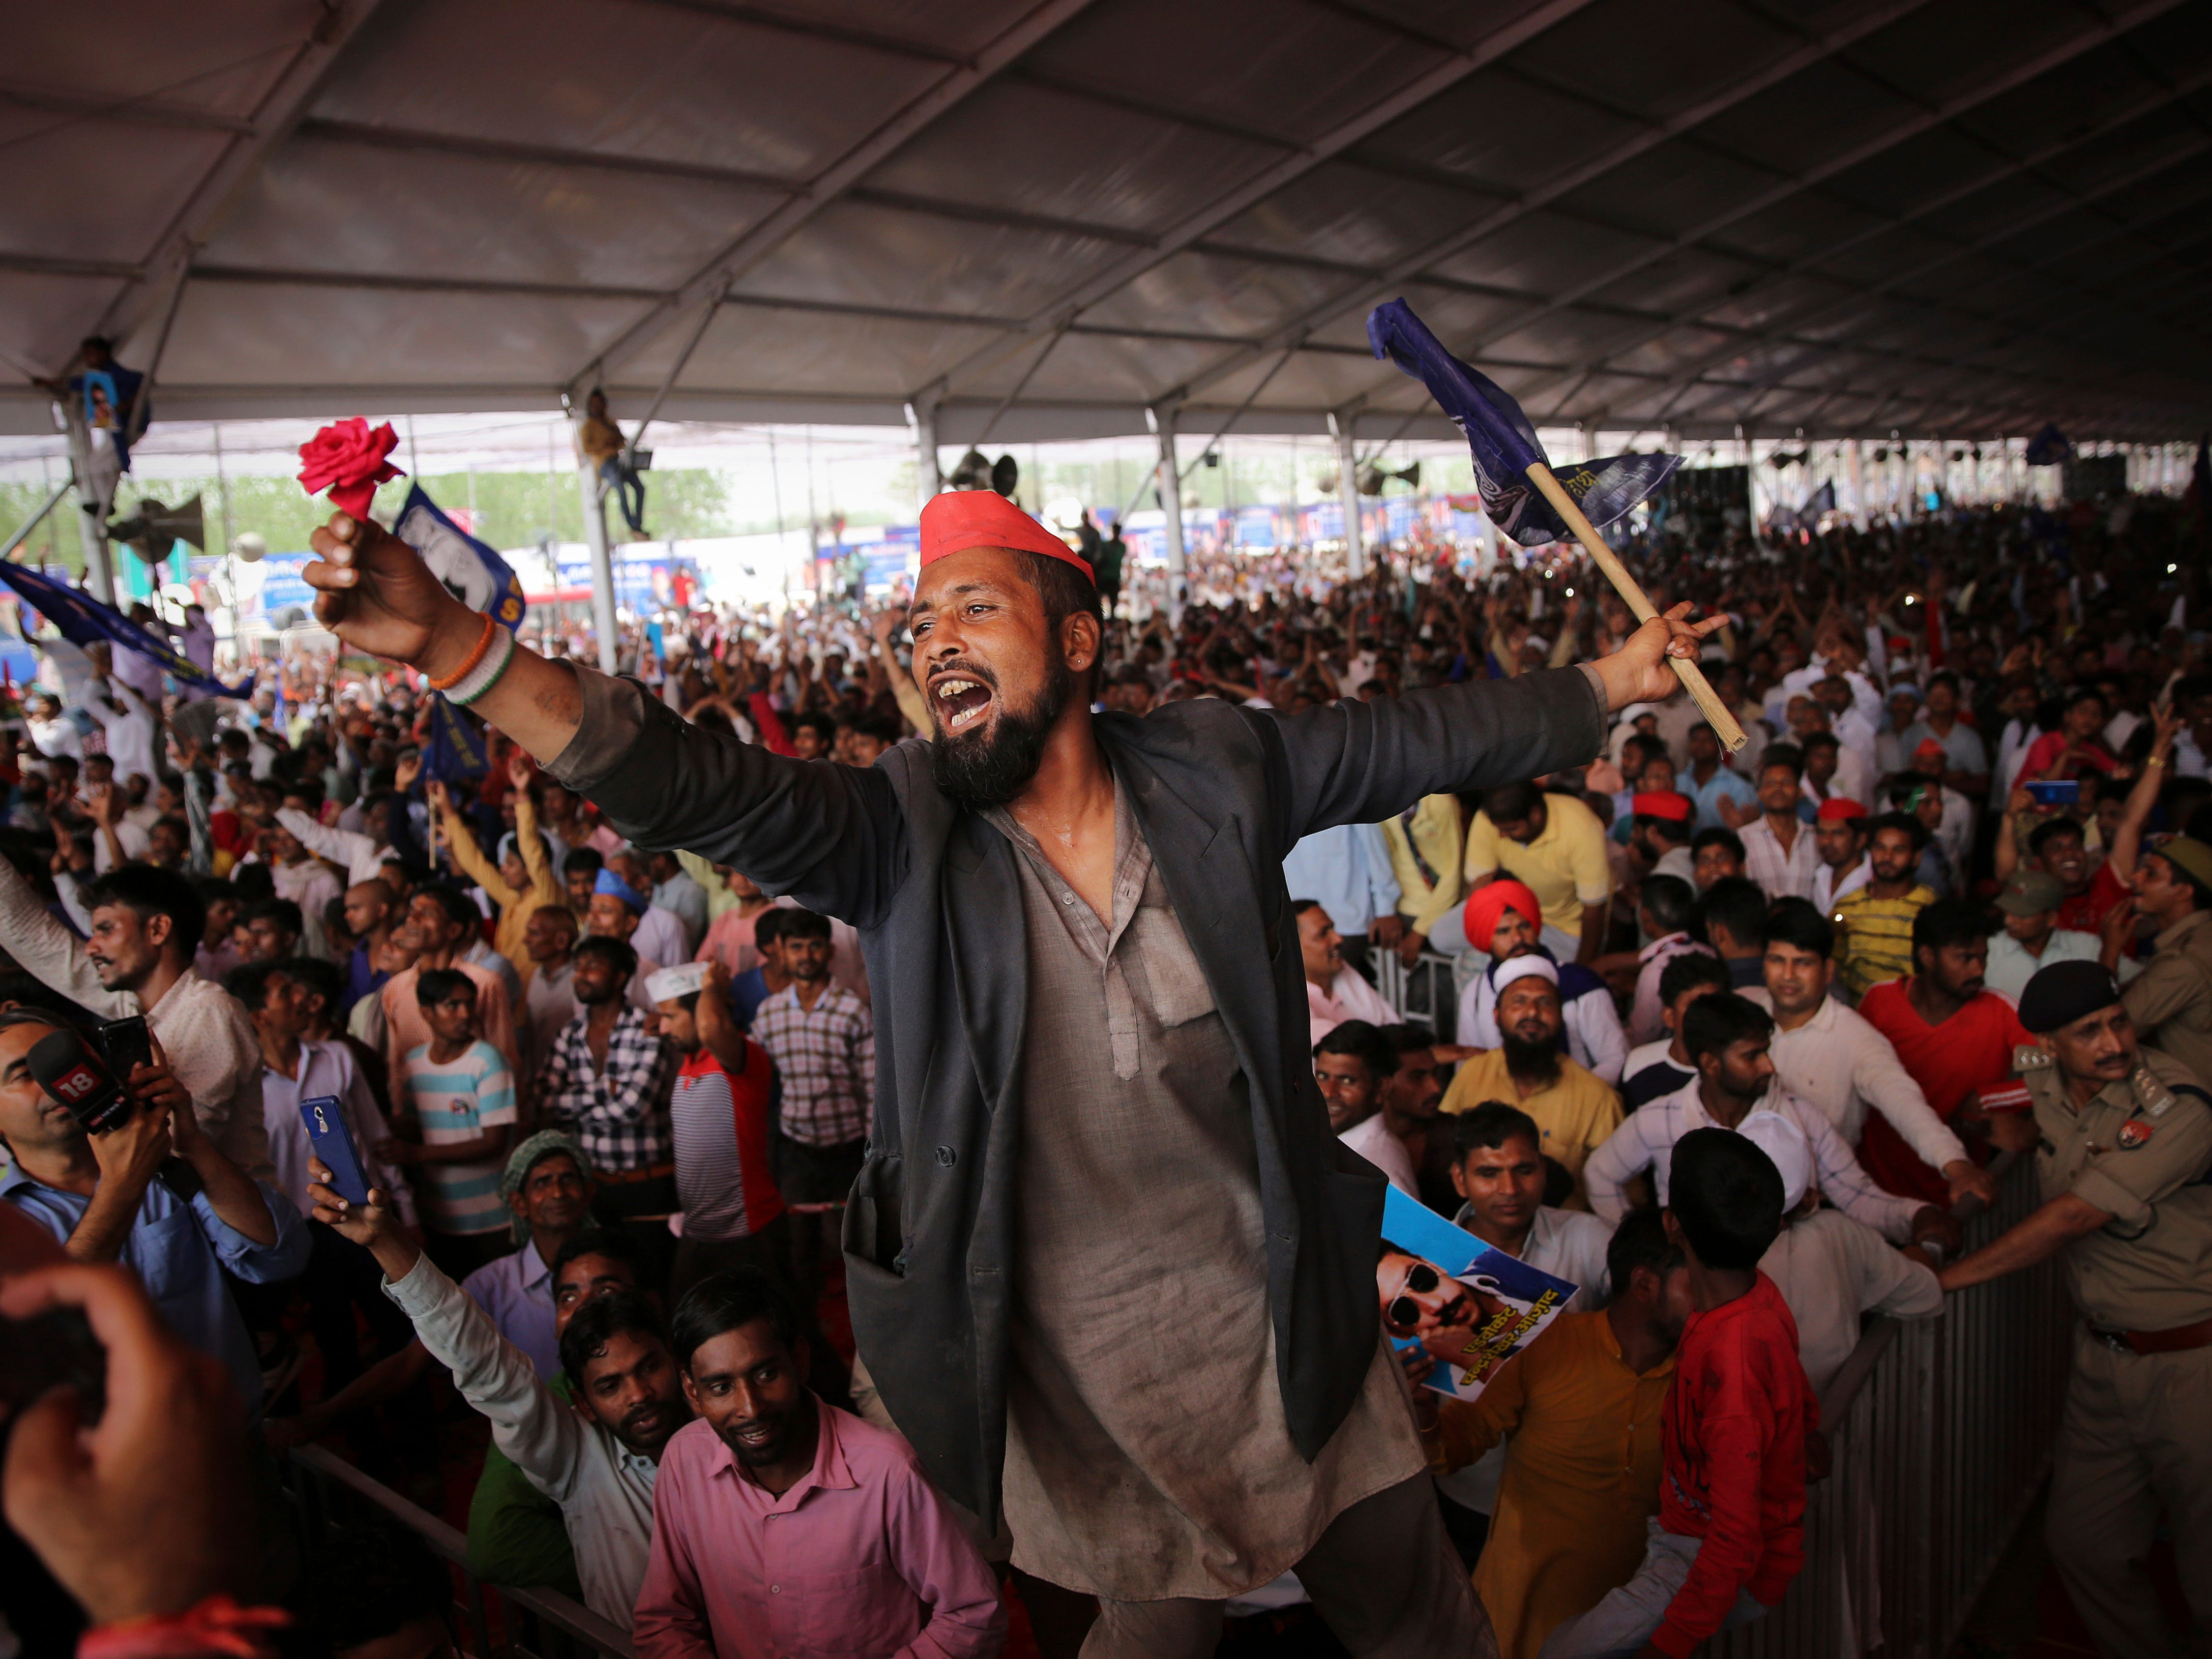 A man cheers holding a flower in hand as supporters of Bahujan Samaj Party (BSP), Samajwadi Party (SP) and Rashtriya Lok Dal (RLD) gather during an election rally in Deoband, Uttar Pradesh, India, Sunday, April 7, 2019. Political archrivals in India's most populous state rallied together Sunday, asking voters to support a new alliance created with the express purpose of defeating Prime Minister Narendra Modi's ruling Hindu nationalist Bharatiya Janata Party.